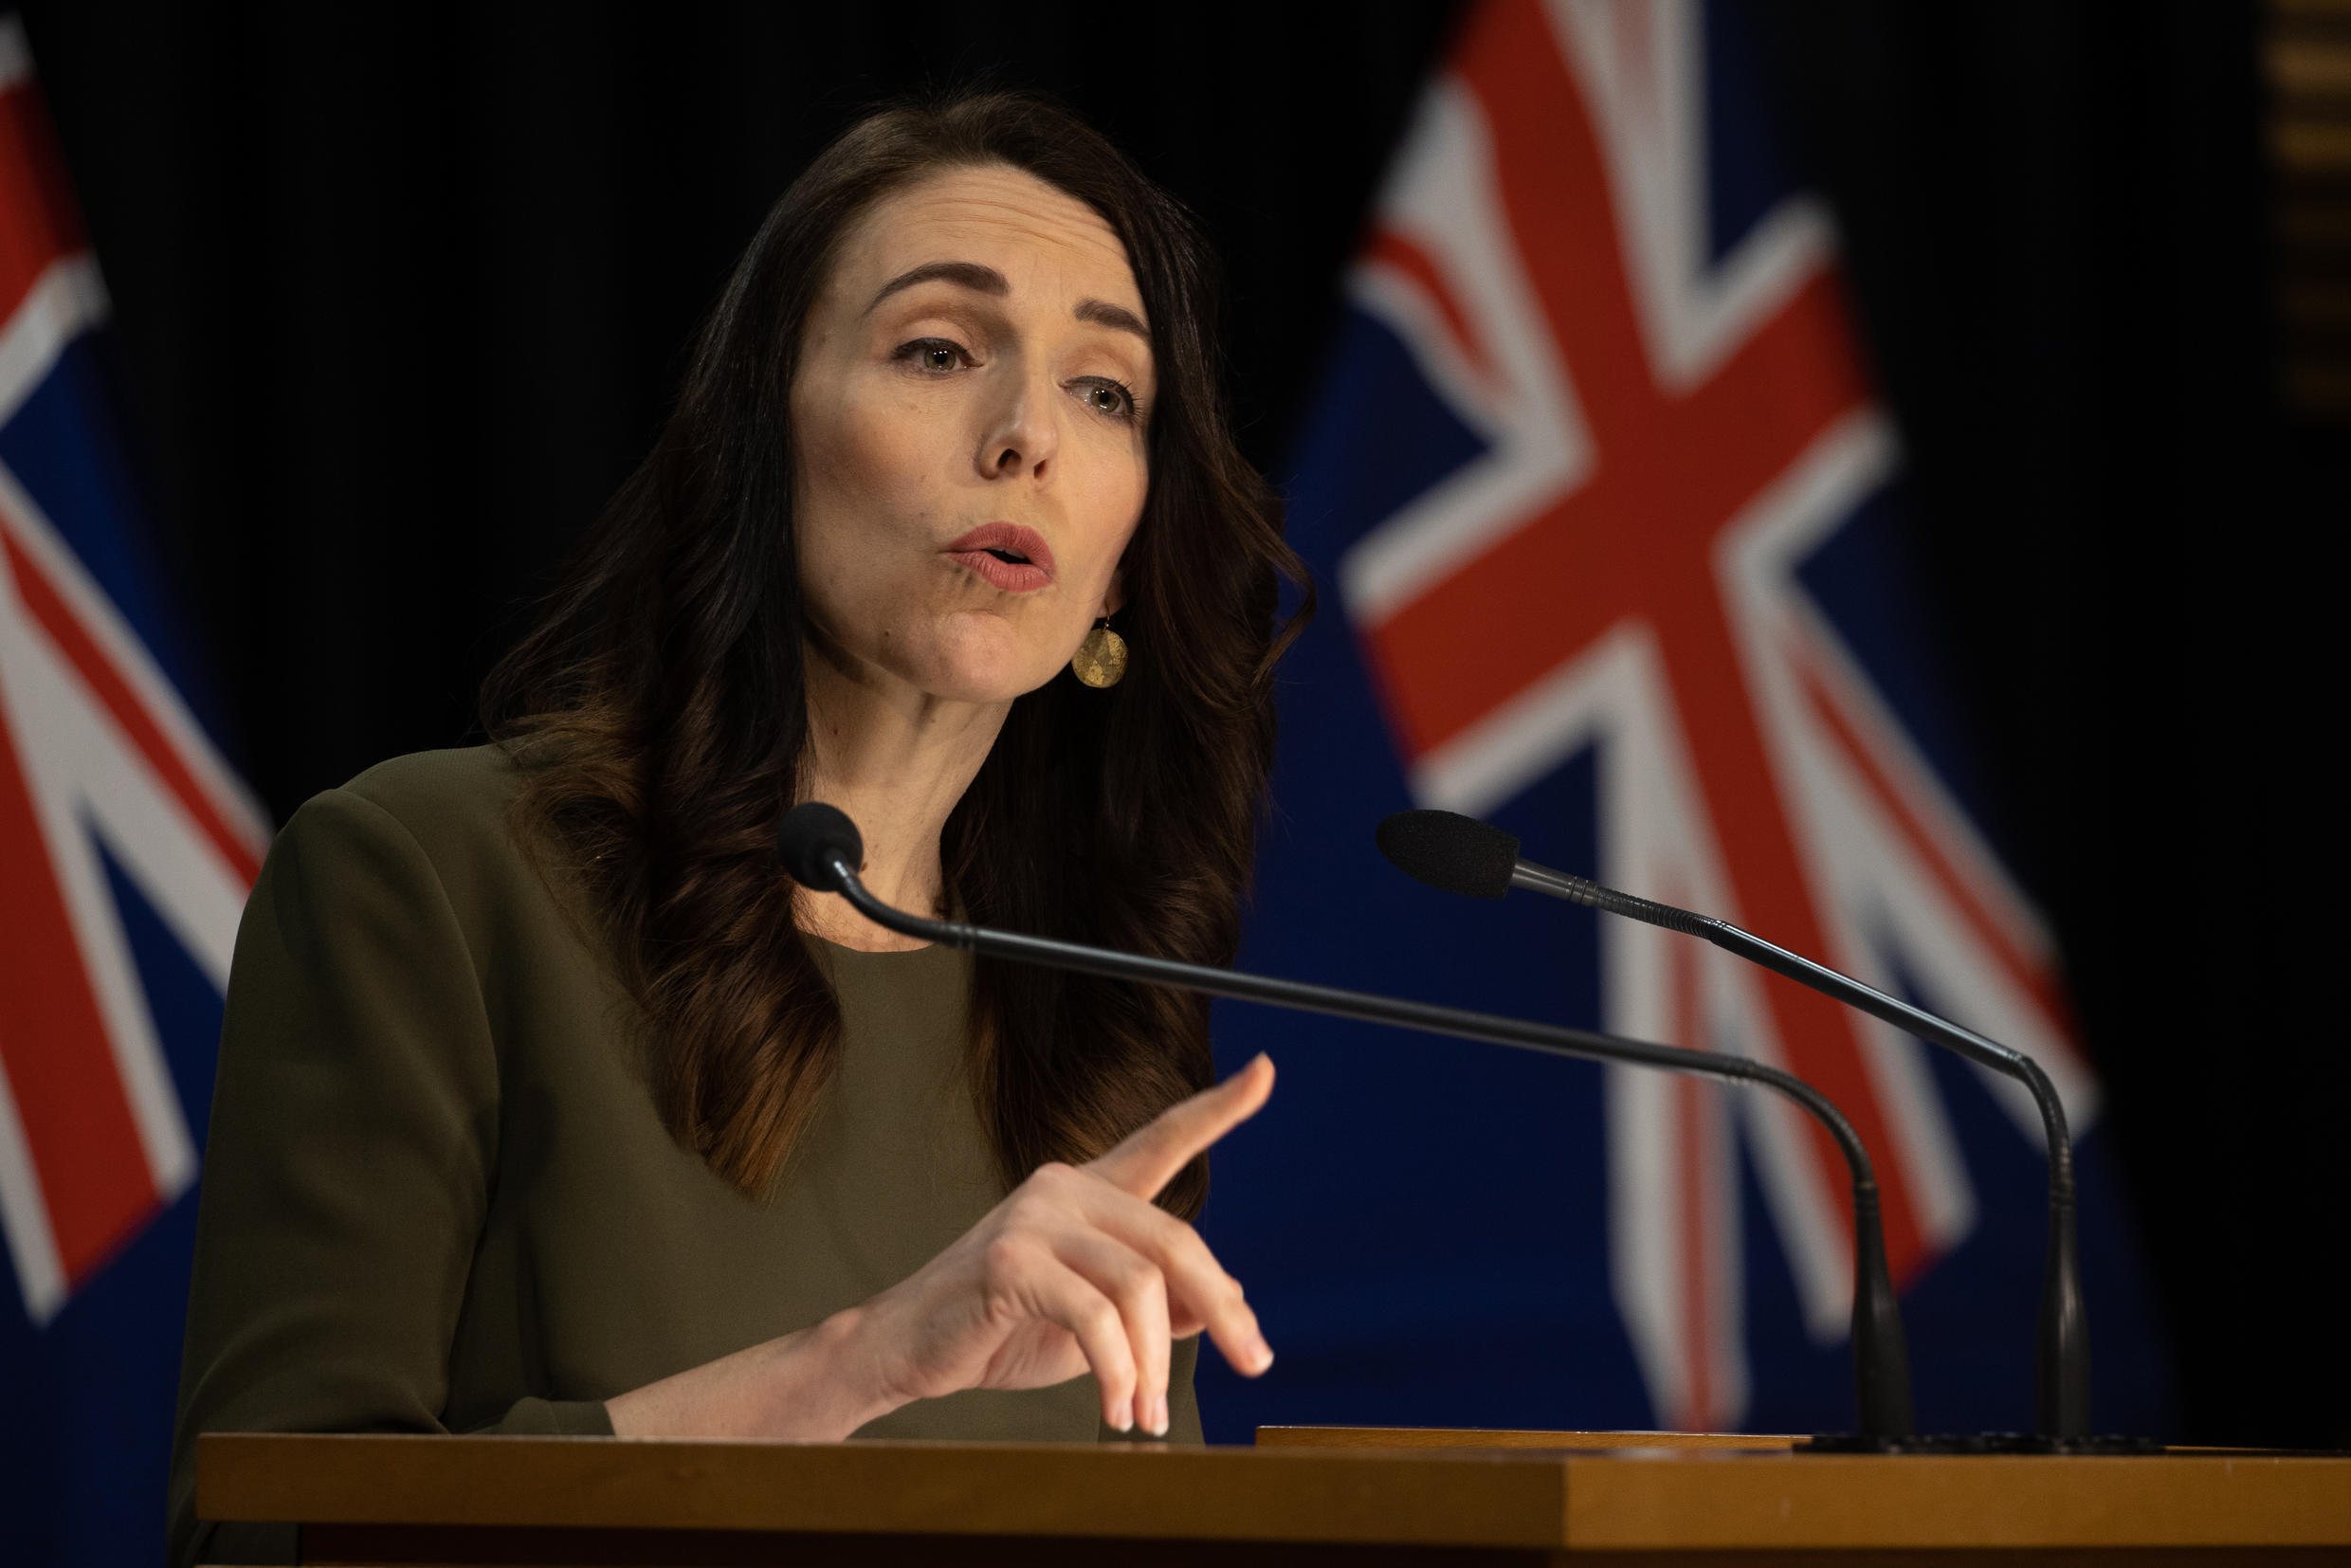 New Zealand's Prime Minister Jacinda Ardern led her party to a landslide win in the October 2020 general elections.